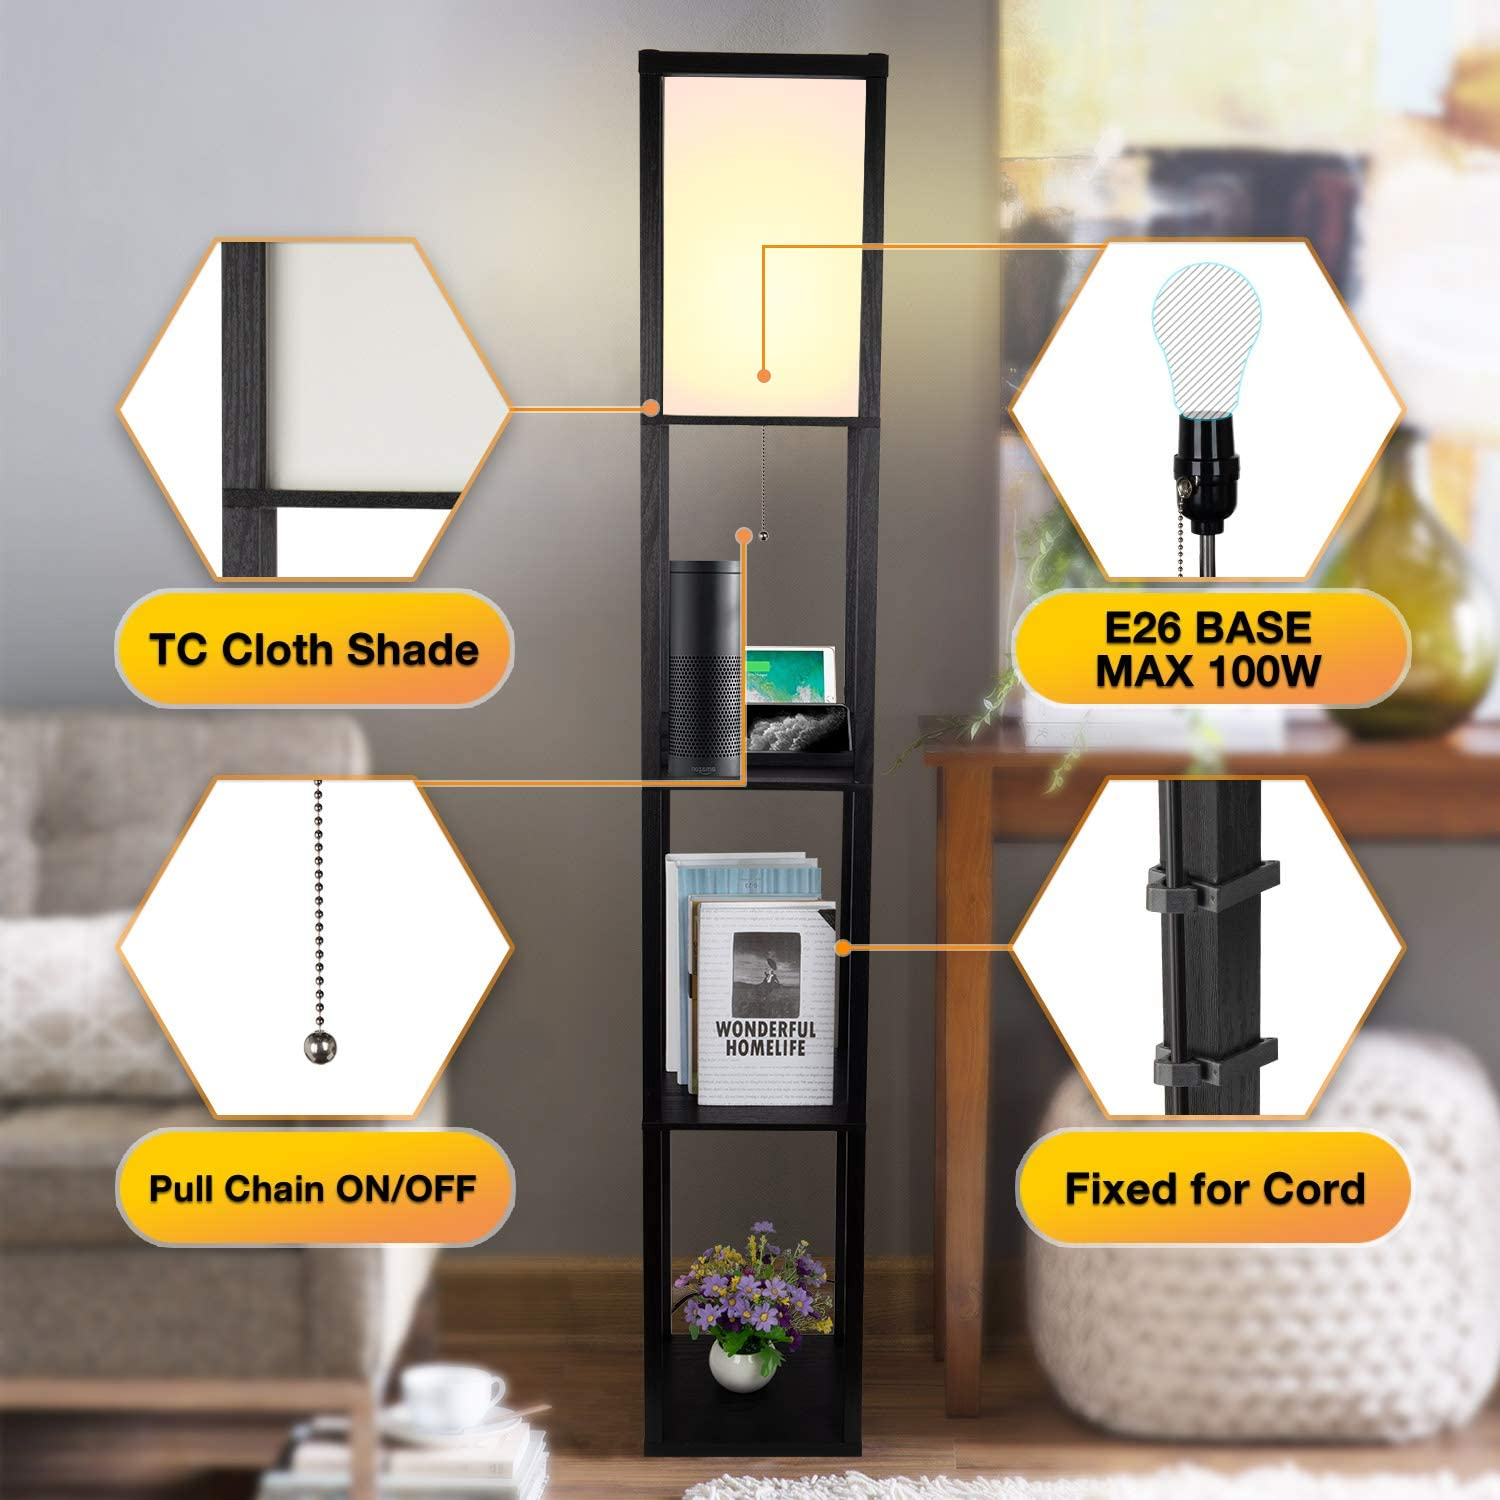 3-in-1 Shelf Floor Lamp with 2 Fast Charging USB Ports and 1 Power Outlet, 3-Tiered LED Shelf Floor Lamp, Shelf & Storage & LED Floor Lamp Combination, Modern Standing Light for Living Room, Bedroom - -